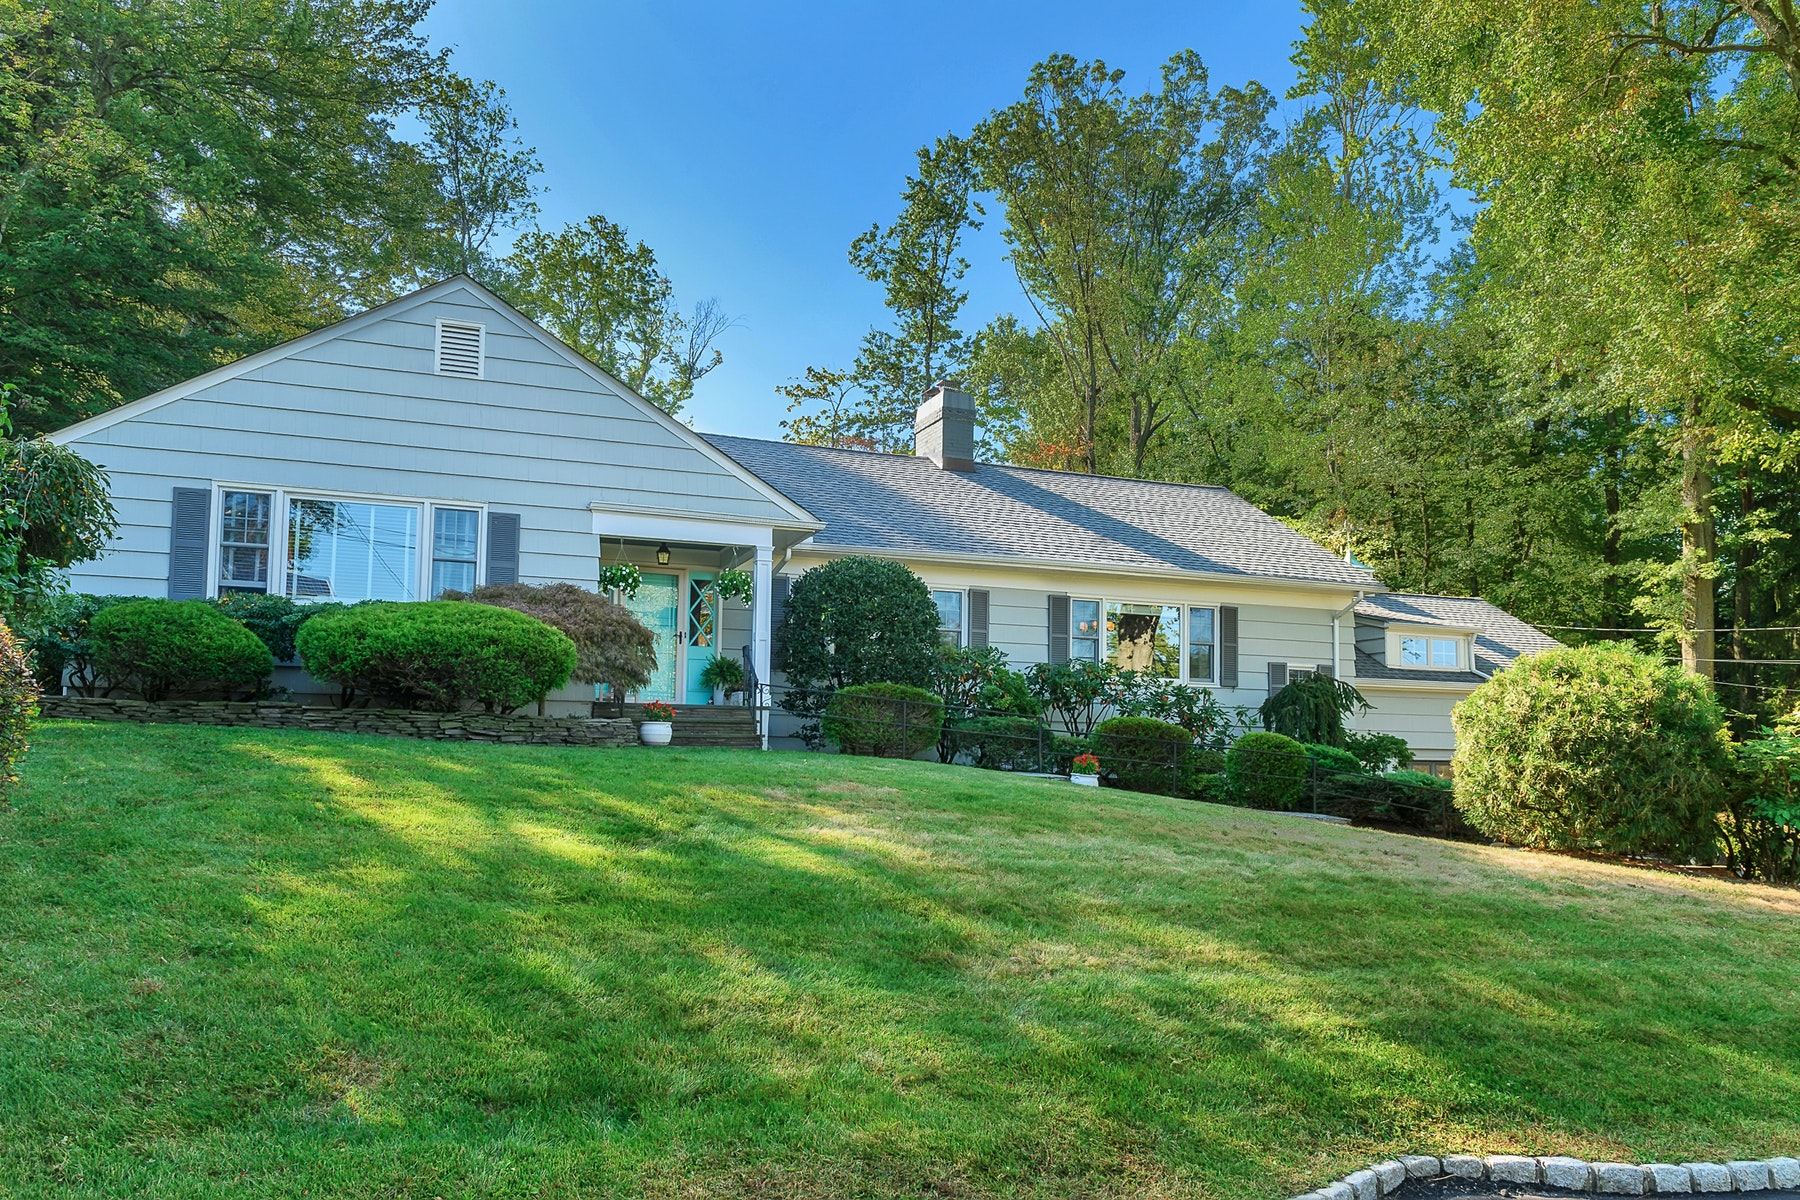 Single Family Homes for Sale at Turn-Key Mid-Century Ranch 13 Stonewood Parkway Verona, New Jersey 07044 United States